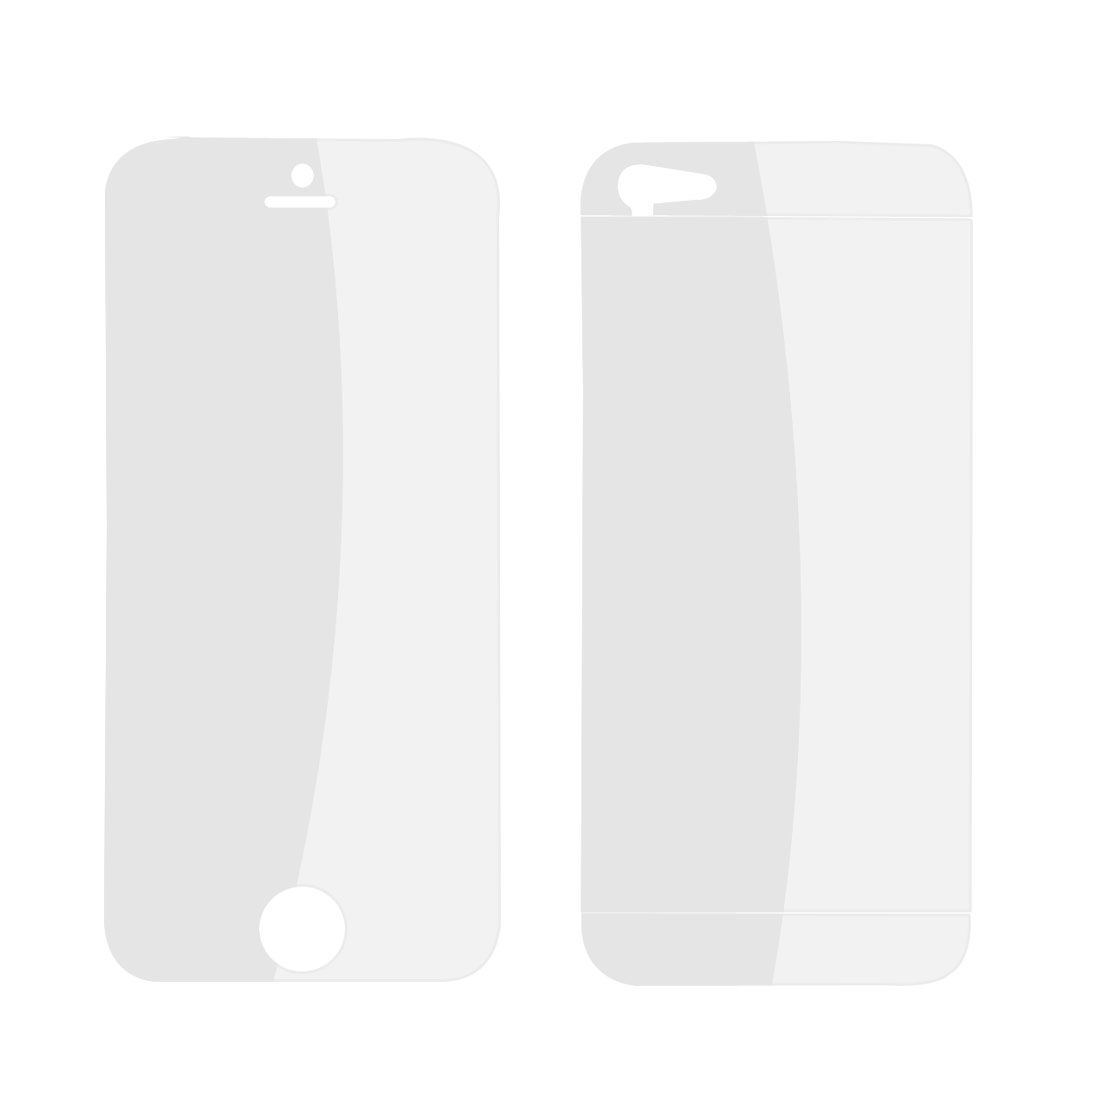 2 Pcs Front + Back Clear Screen Protector Guard Cover for iPhone 5 5G